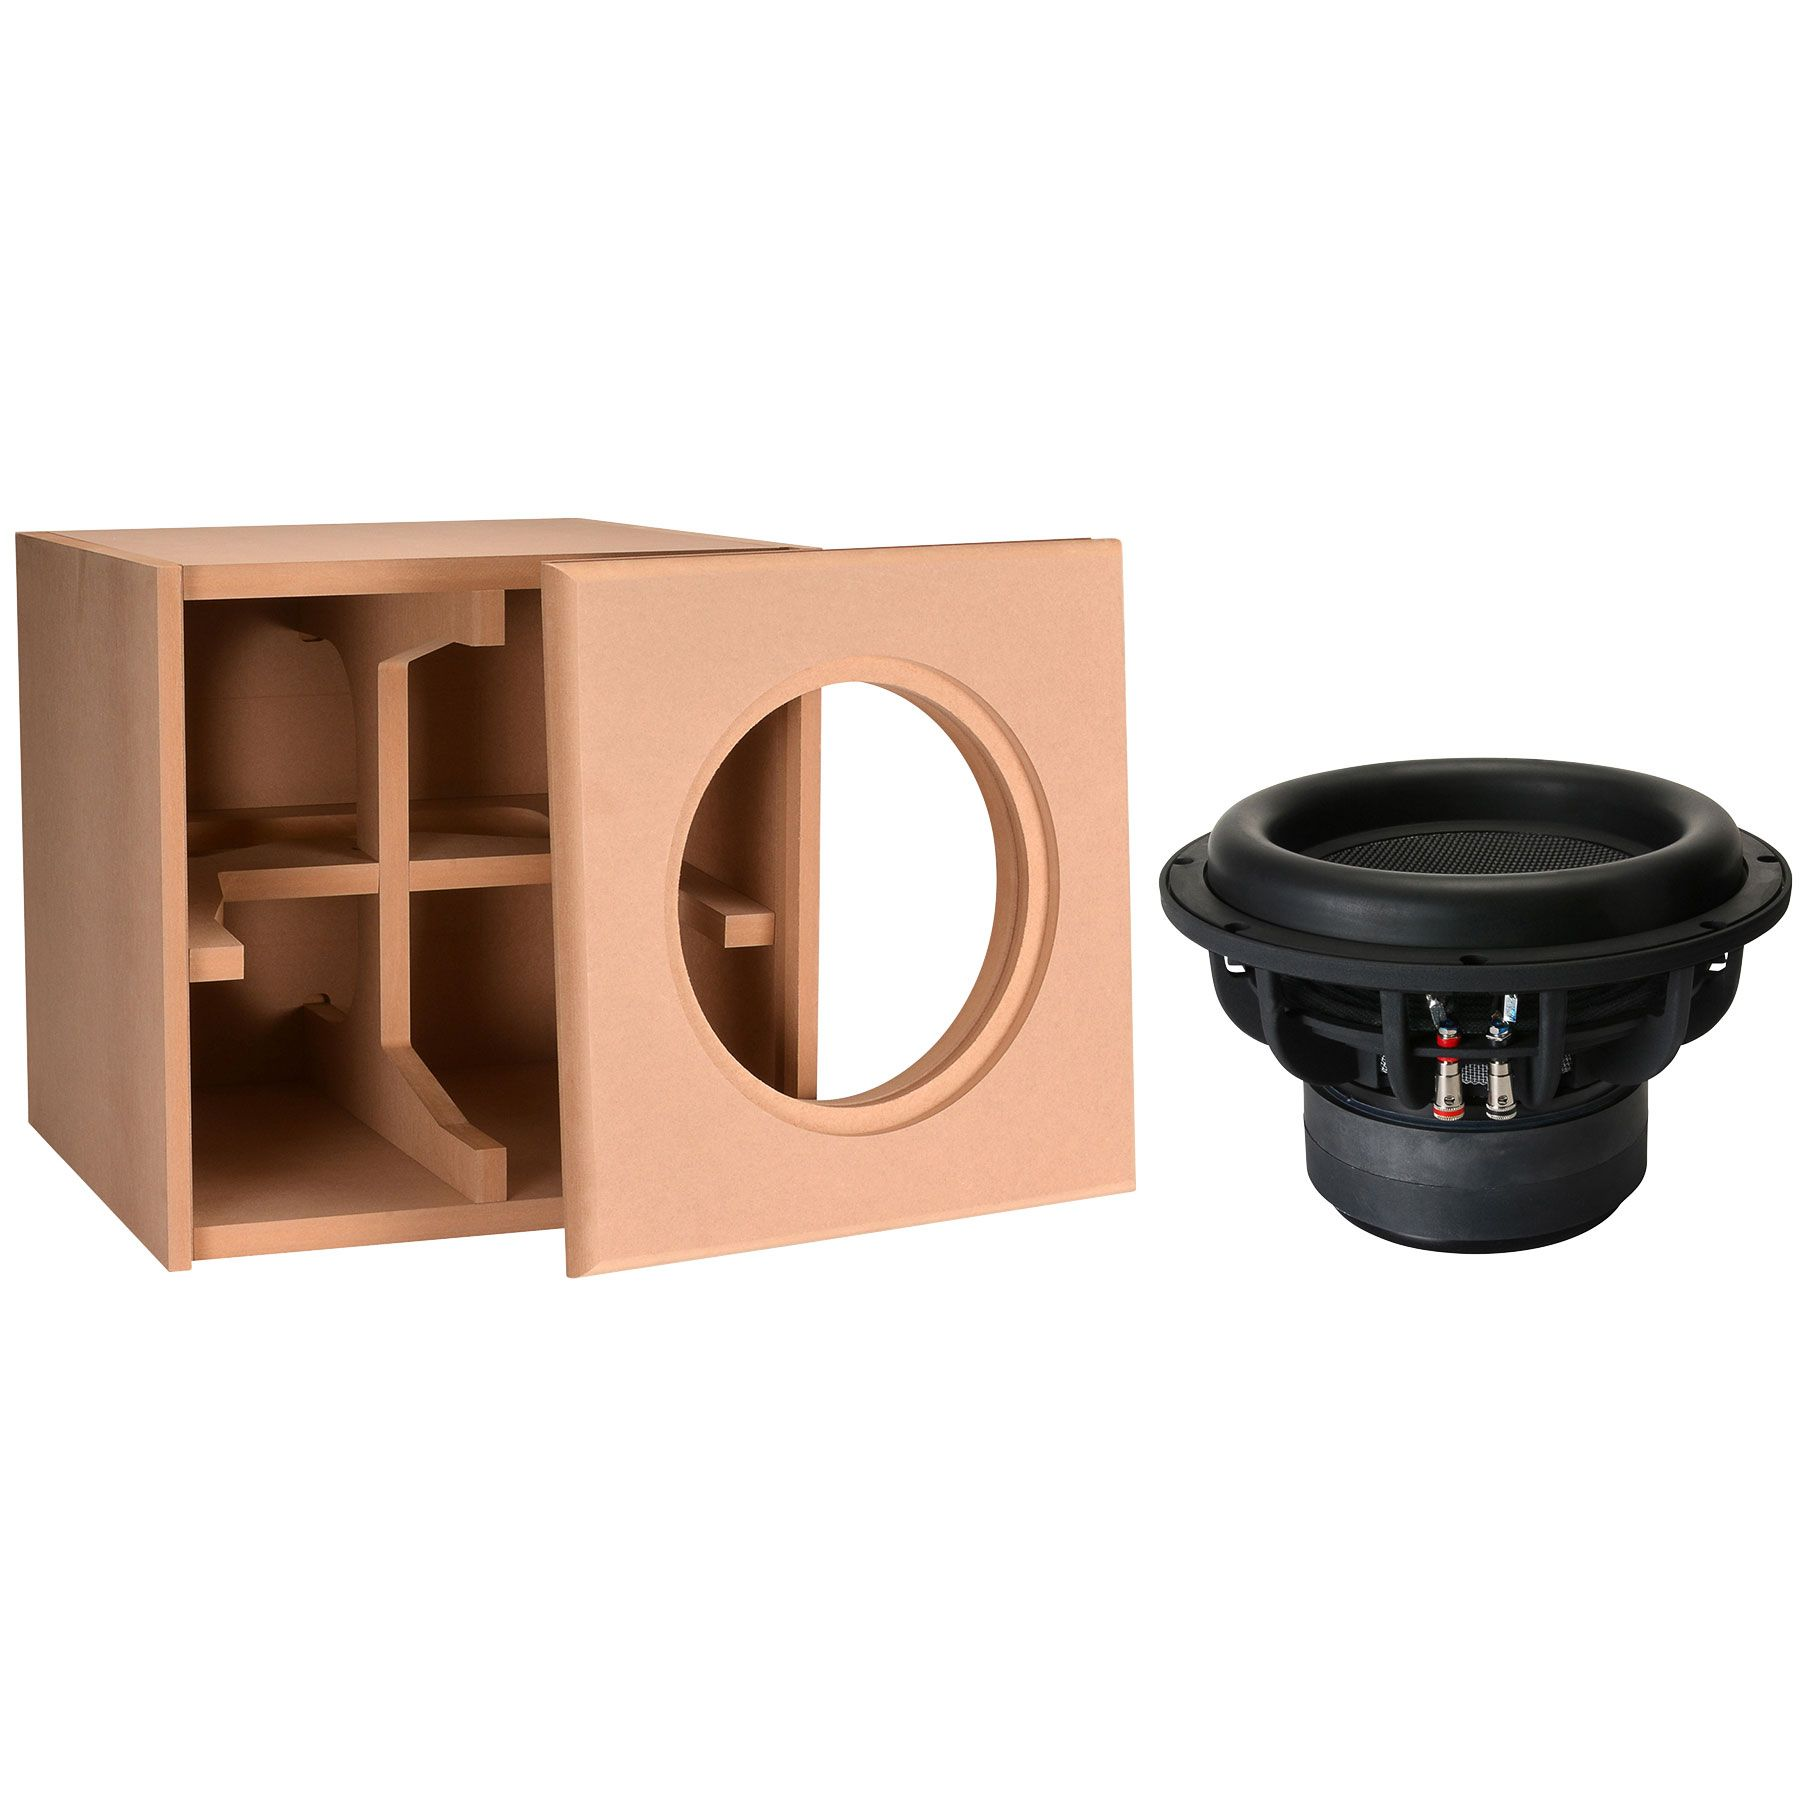 Dayton audio 10 ultimax subwoofer and package